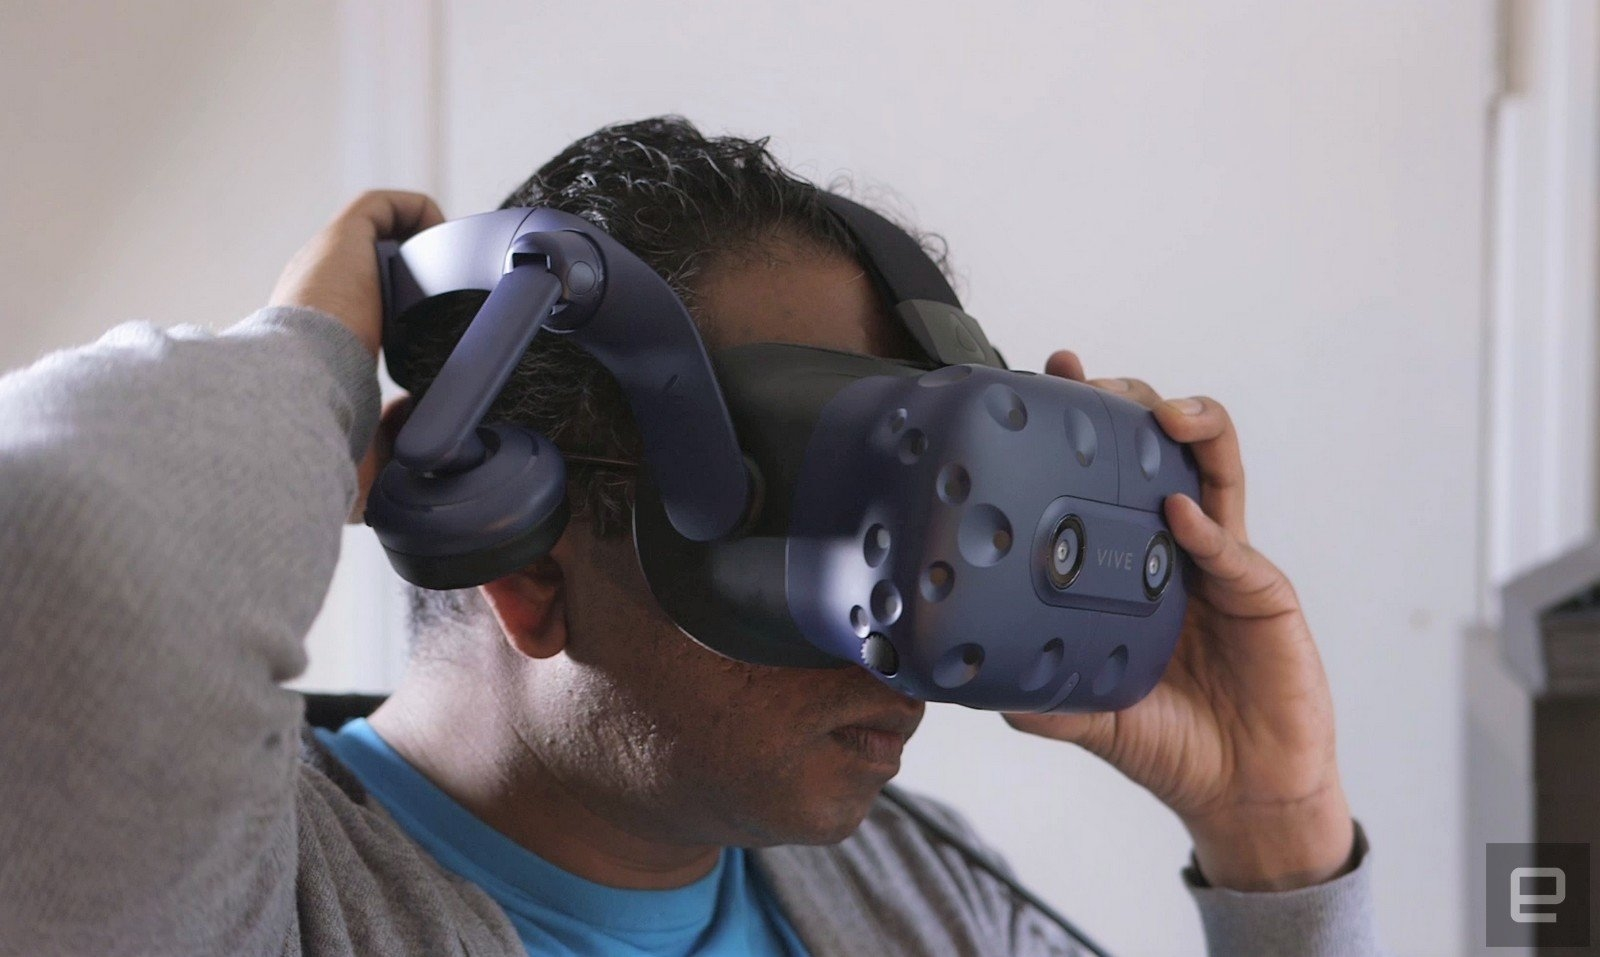 HTC hints at multi-room VR using Steam | DeviceDaily.com